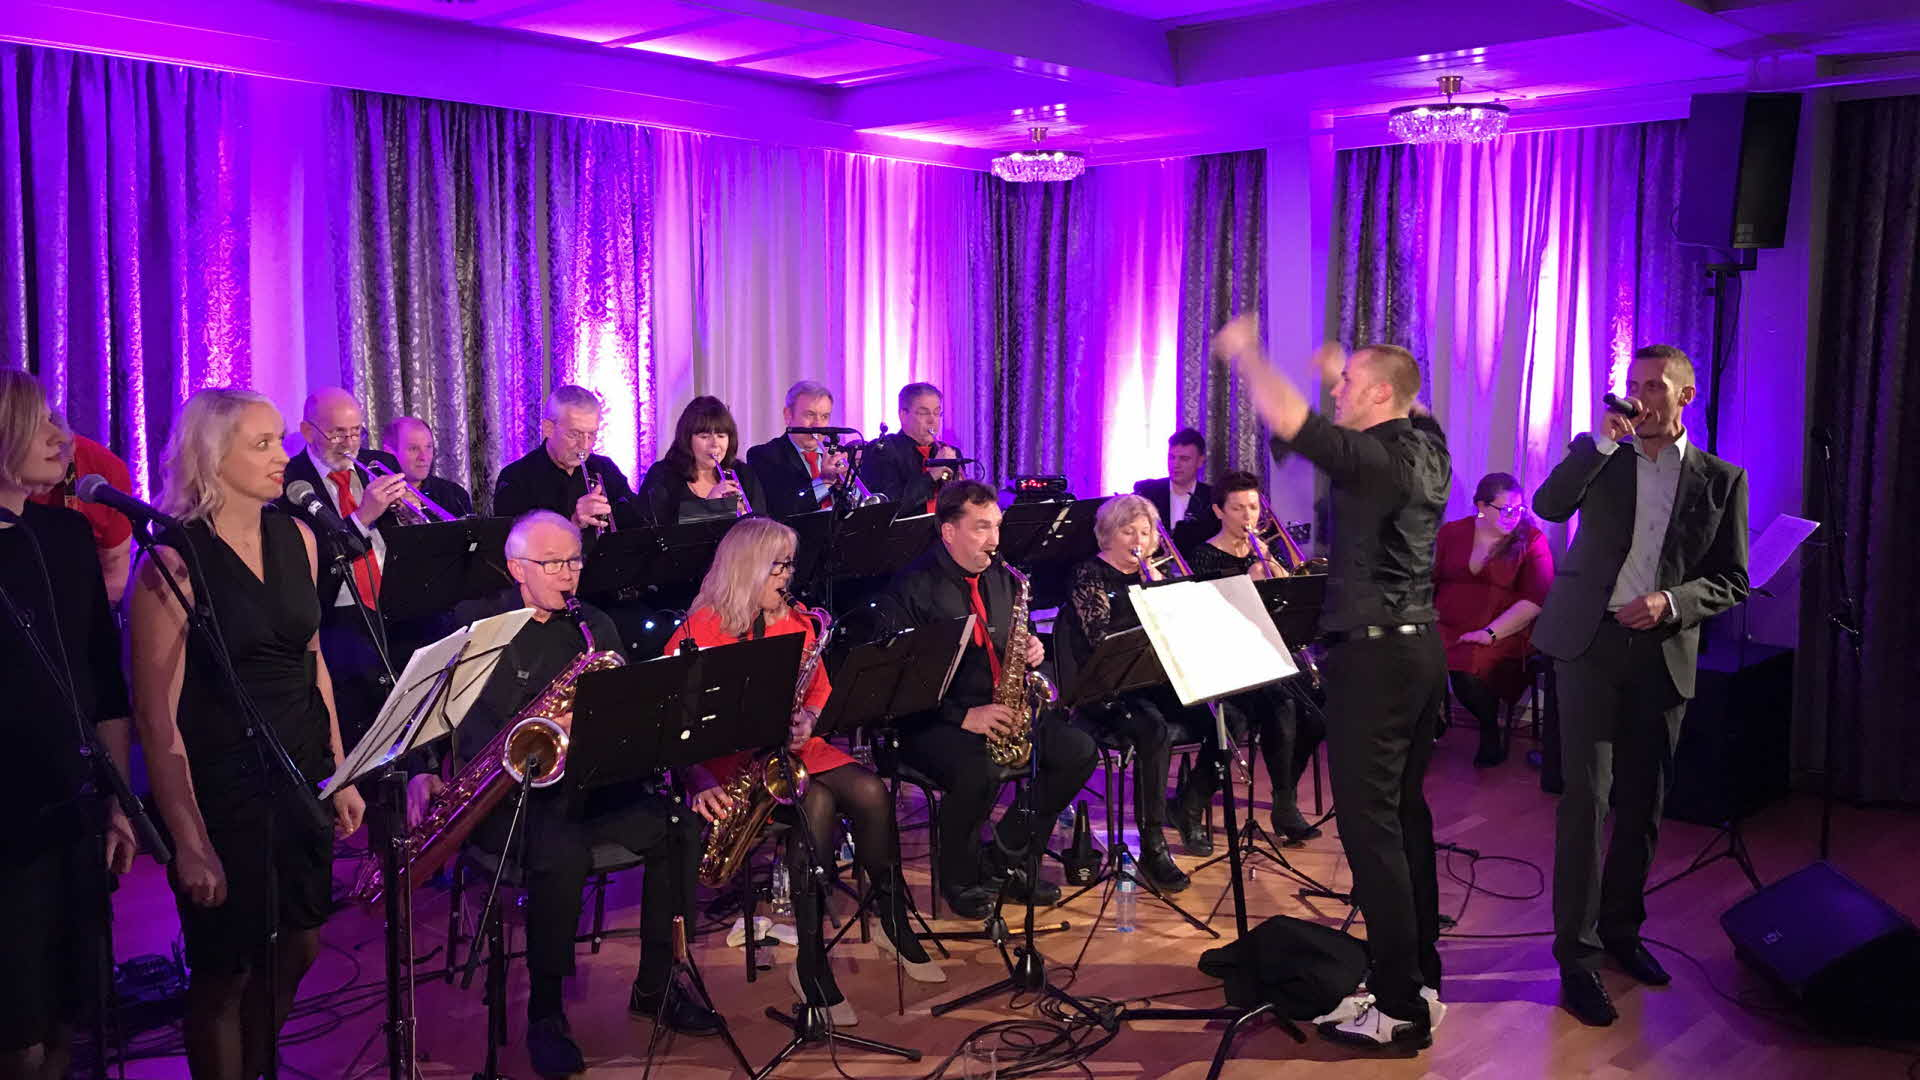 A big band playing at Fretheim Hotel